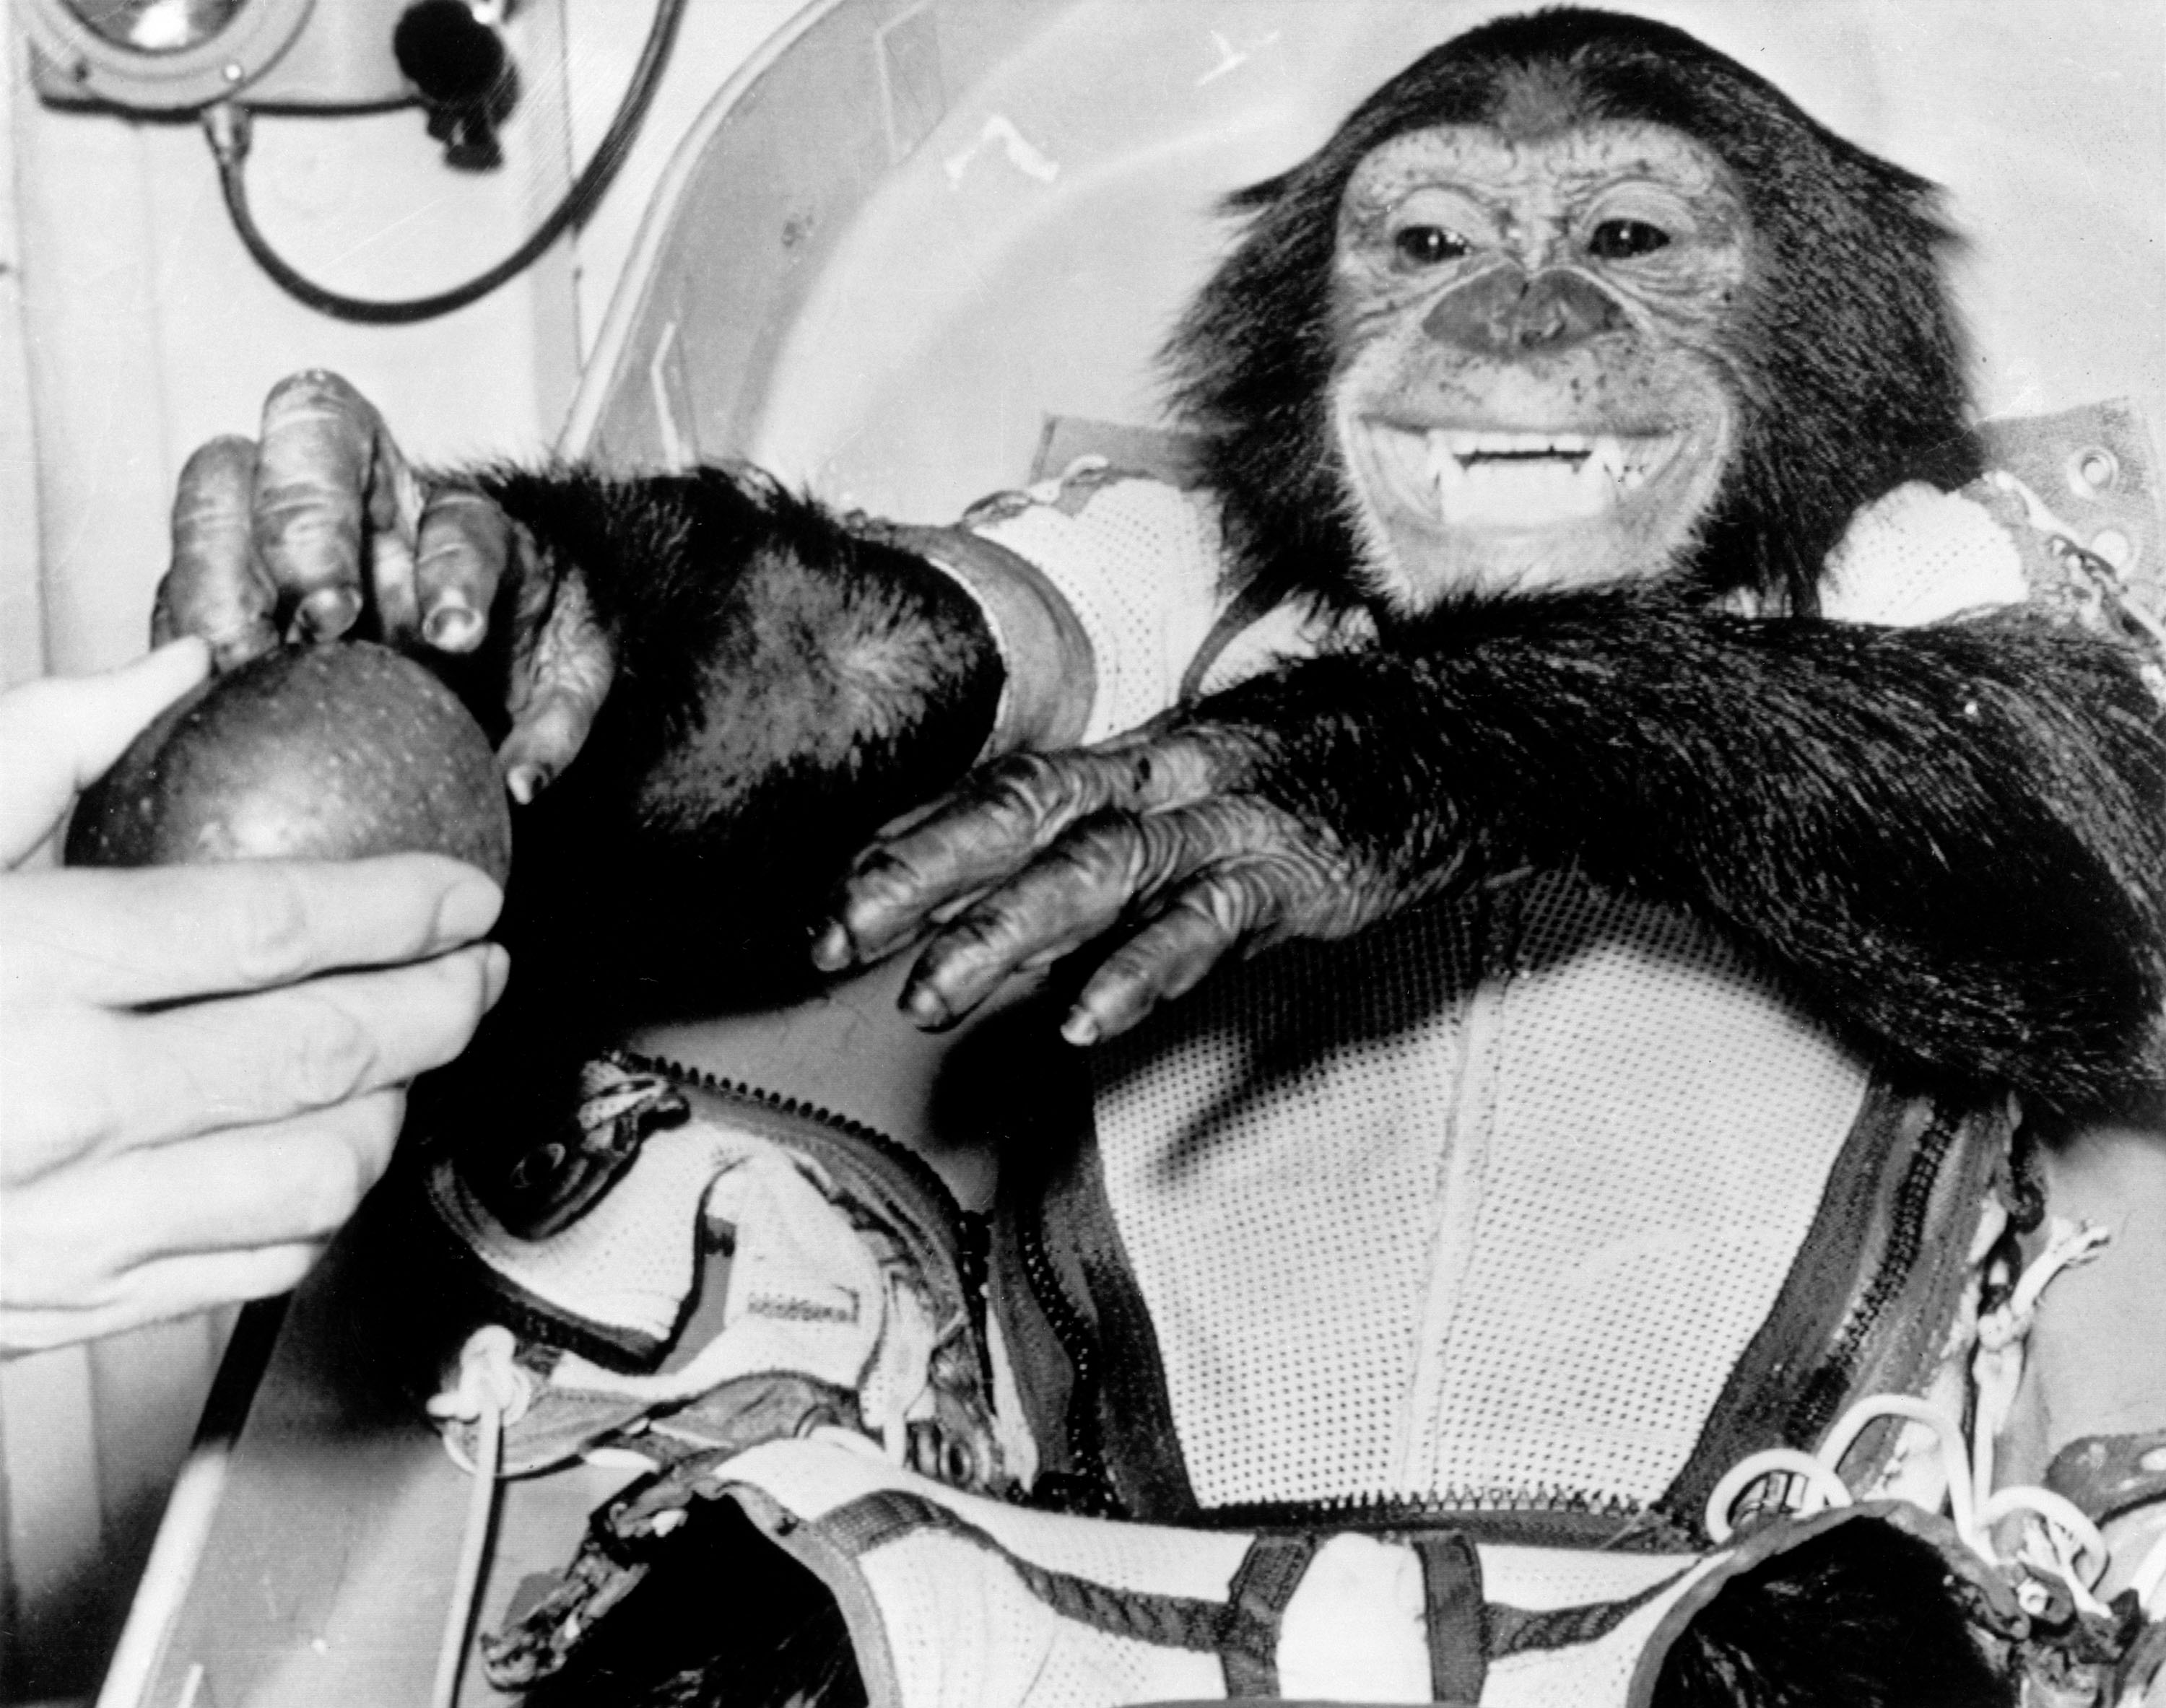 Astronaut chimpanzee, Ham, gets an apple after his first successful flight into space [3,000 × 2,366] 31 January 1961